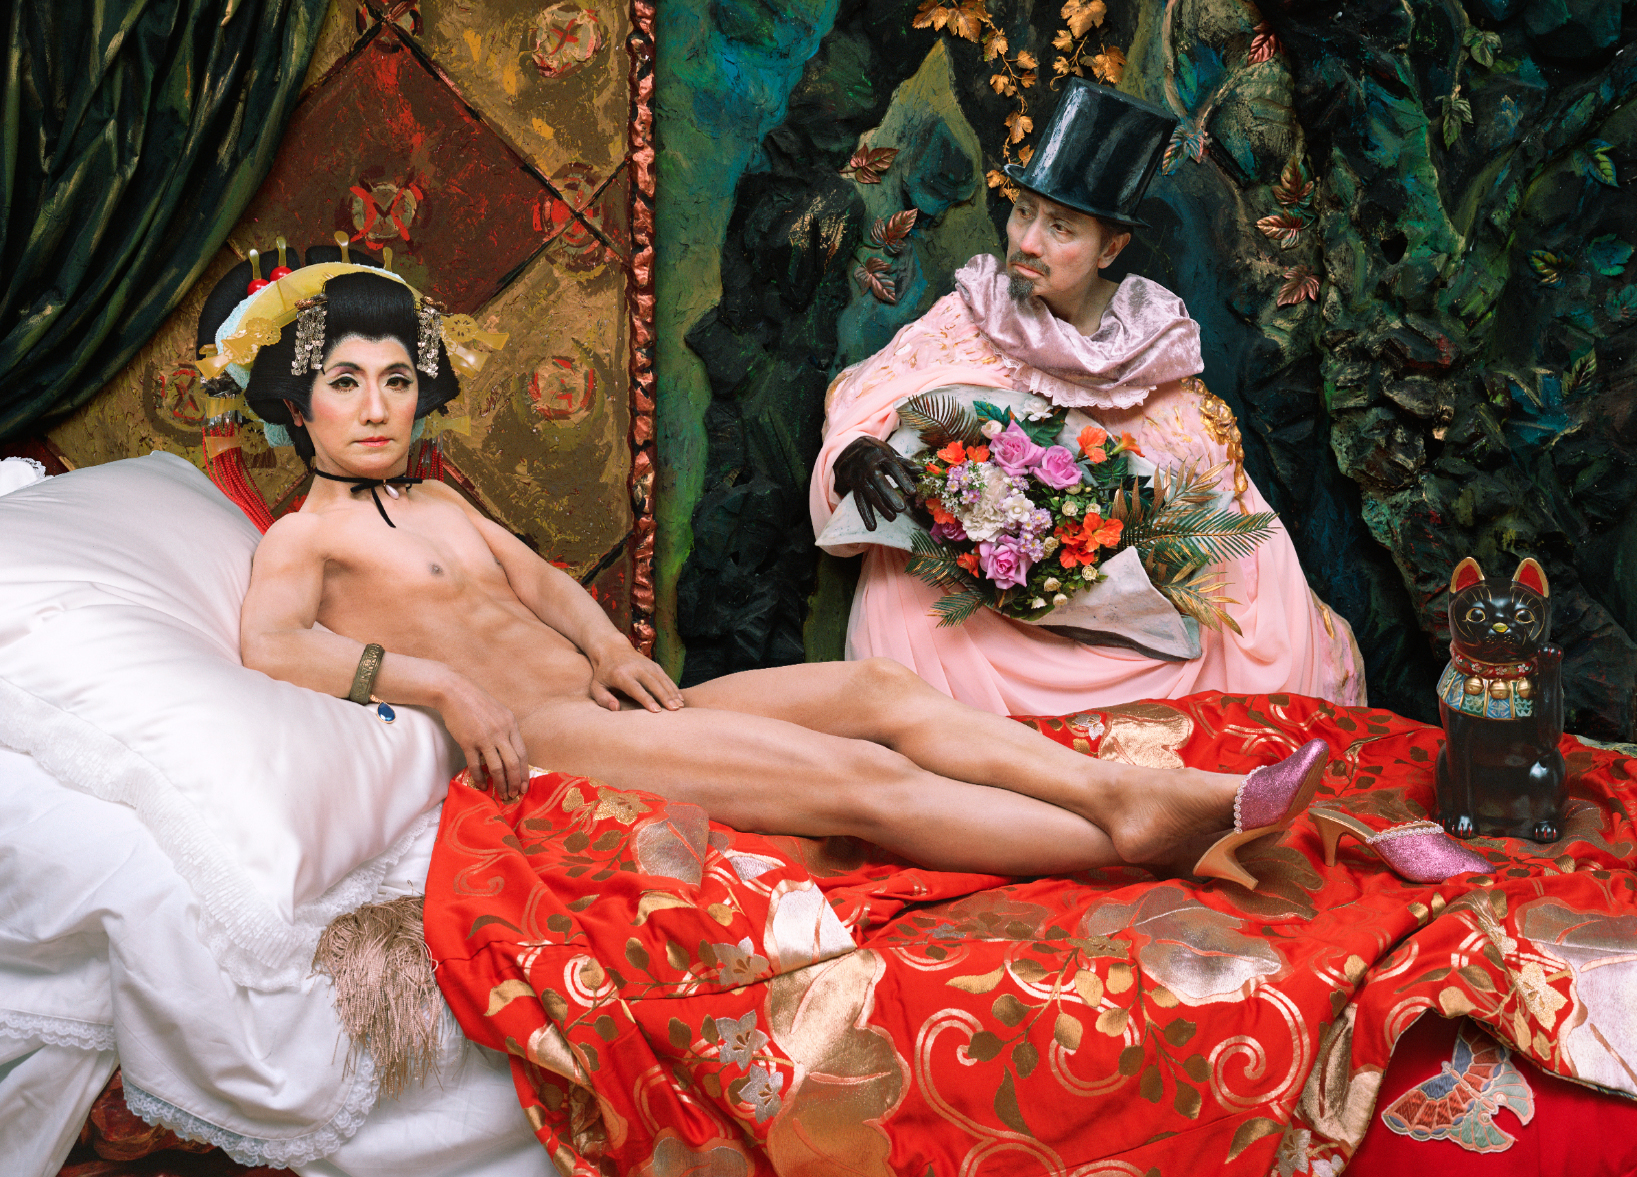 Yasumasa Morimura, Une moderne Olympia, 2018. Courtesy of the artist and Luhring Augustine, New York. © Yasumasa Morimura